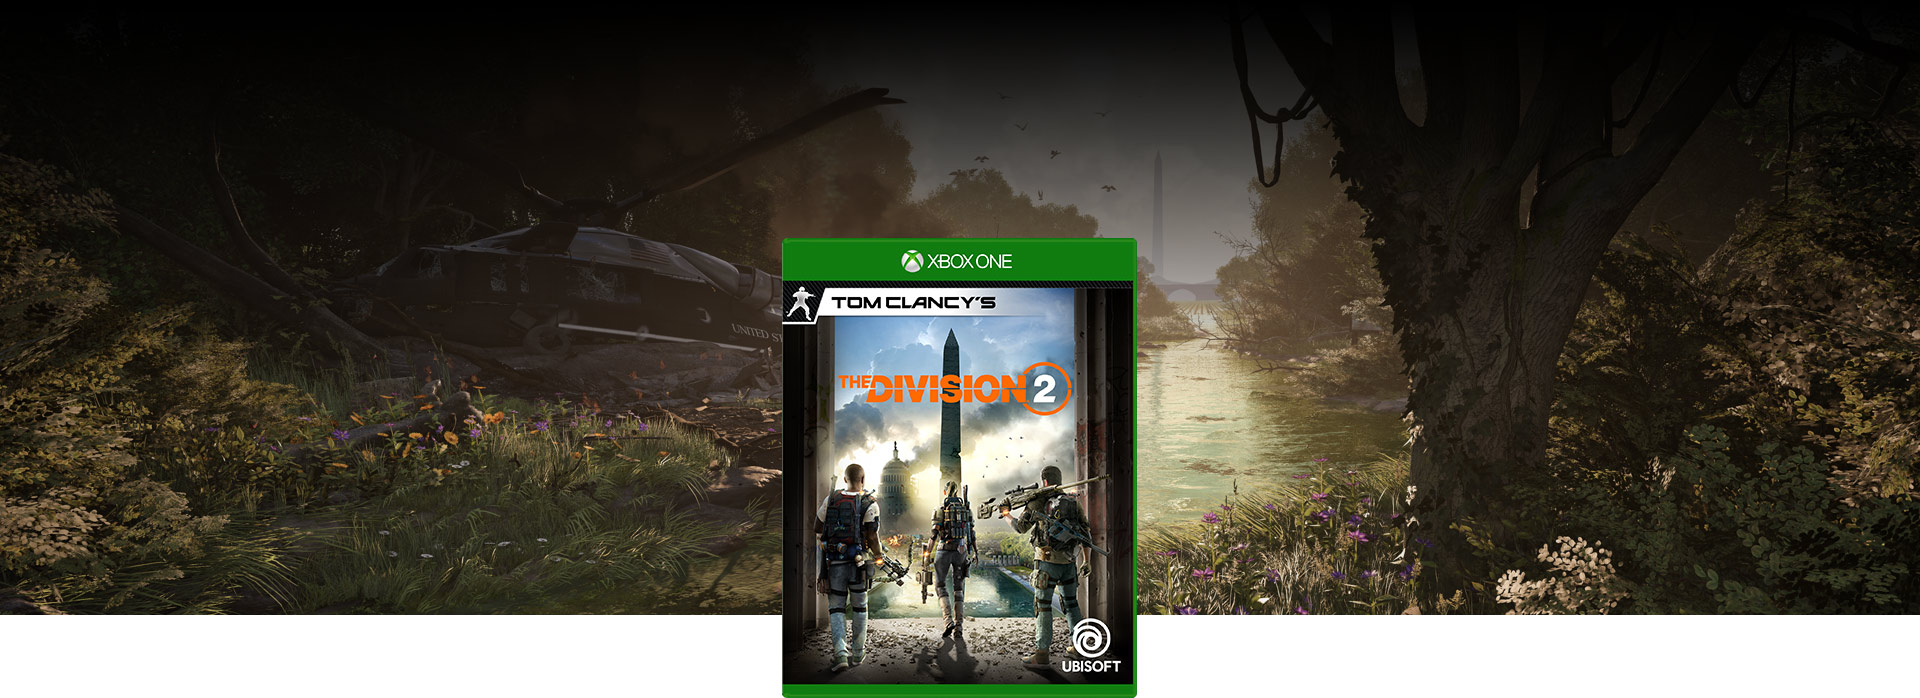 Tom Clancy's The Division 2 boxshot, background of crashed helicopter in a forest